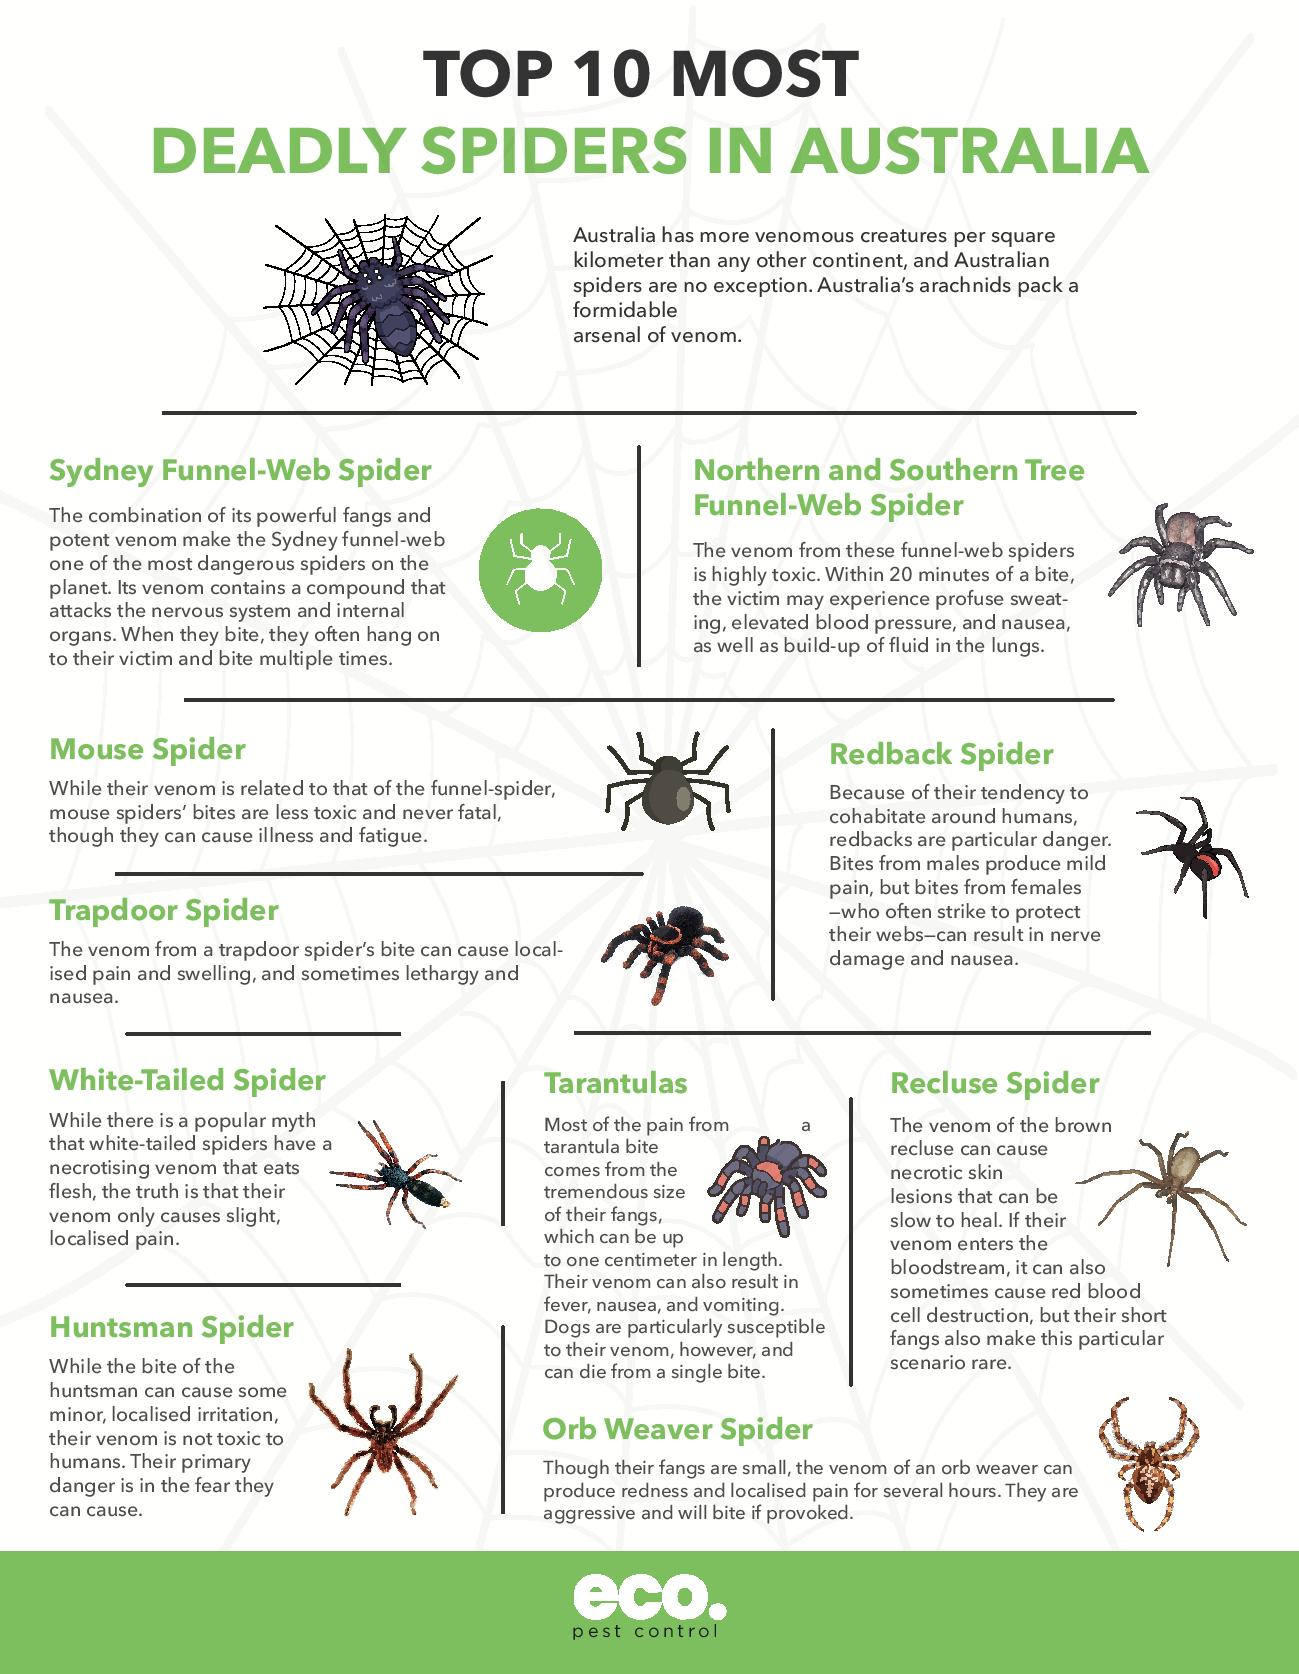 Top 10 Most Deadly Spiders in Australia